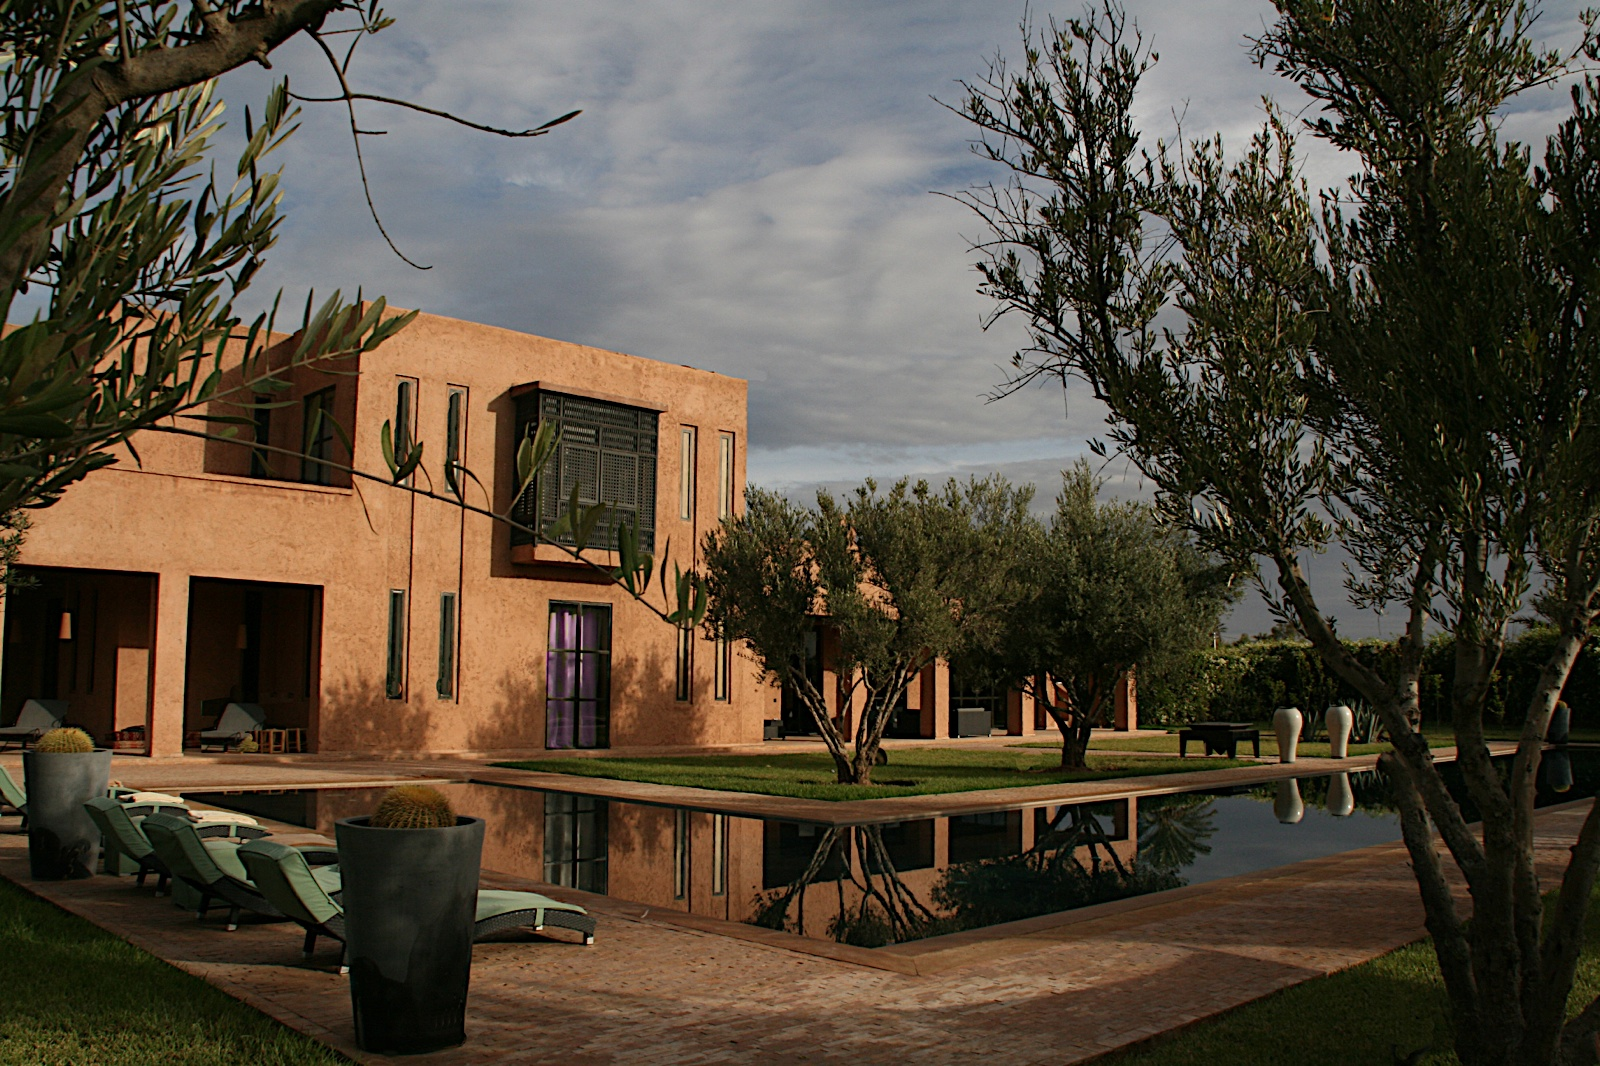 Vilavpal1009g 59 agence immobili re marrakech acheter for Agence immobiliere 59